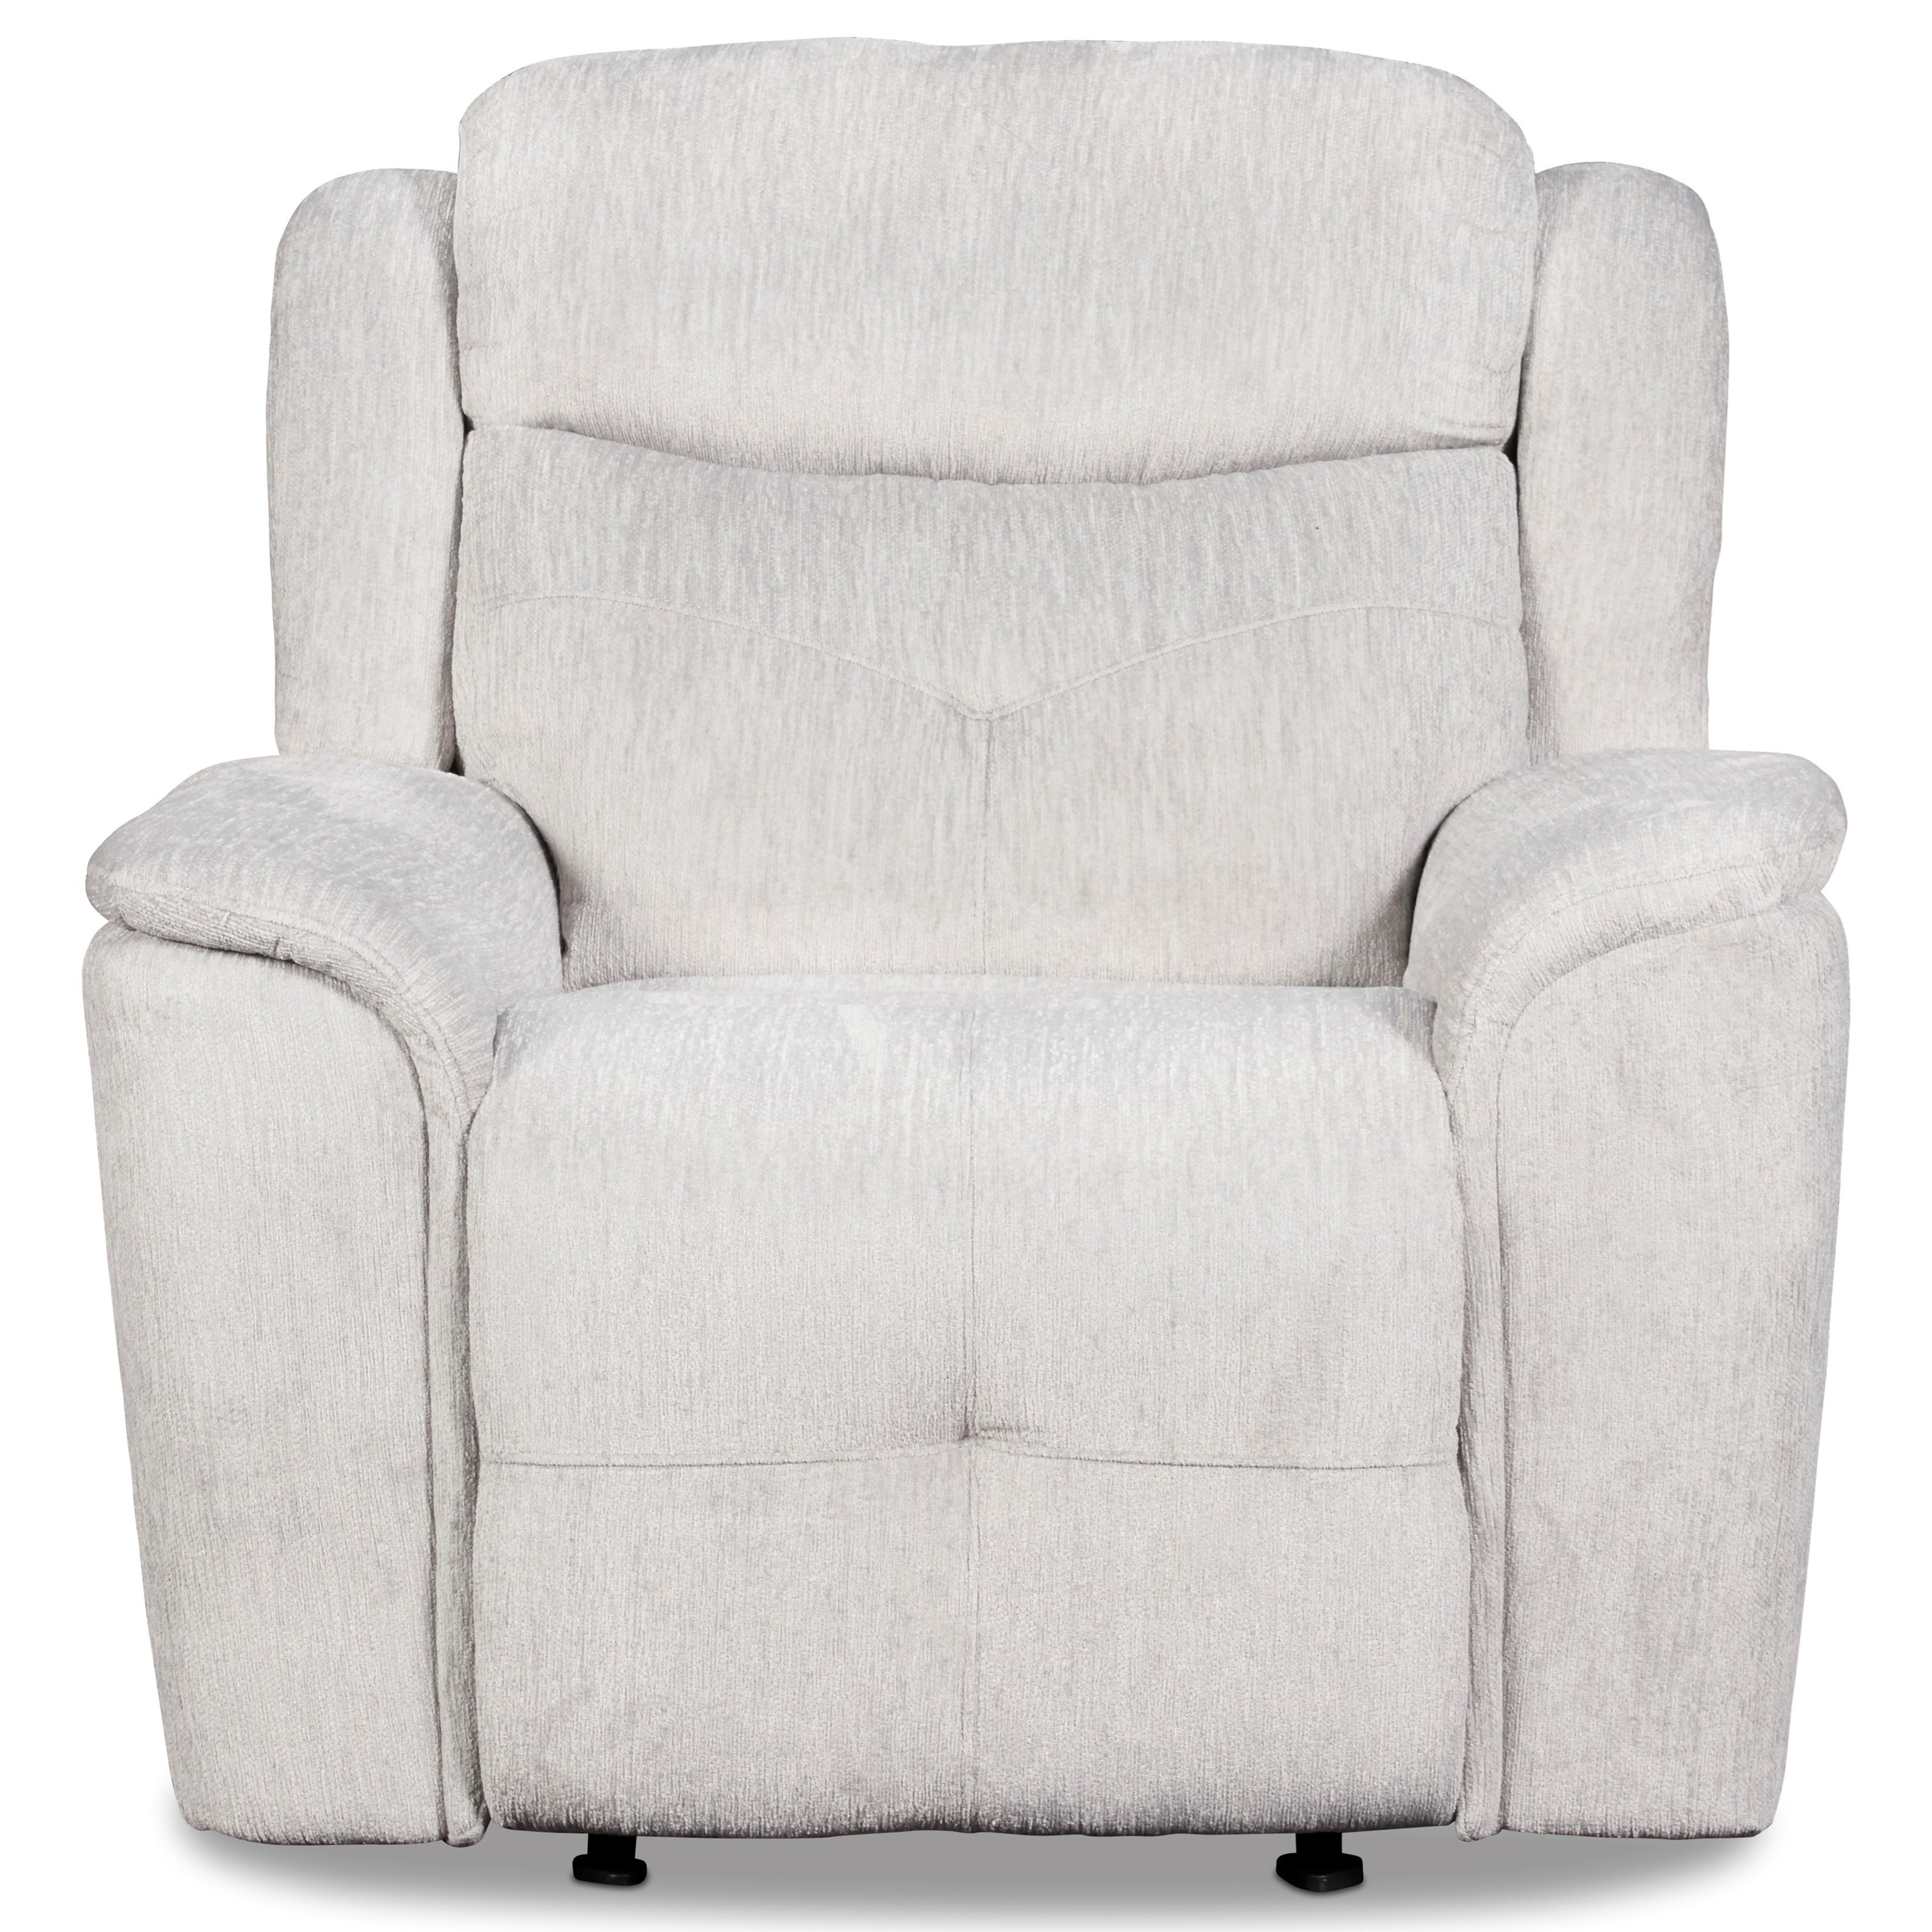 HAVANA Glider Recliner by New Classic at Beck's Furniture